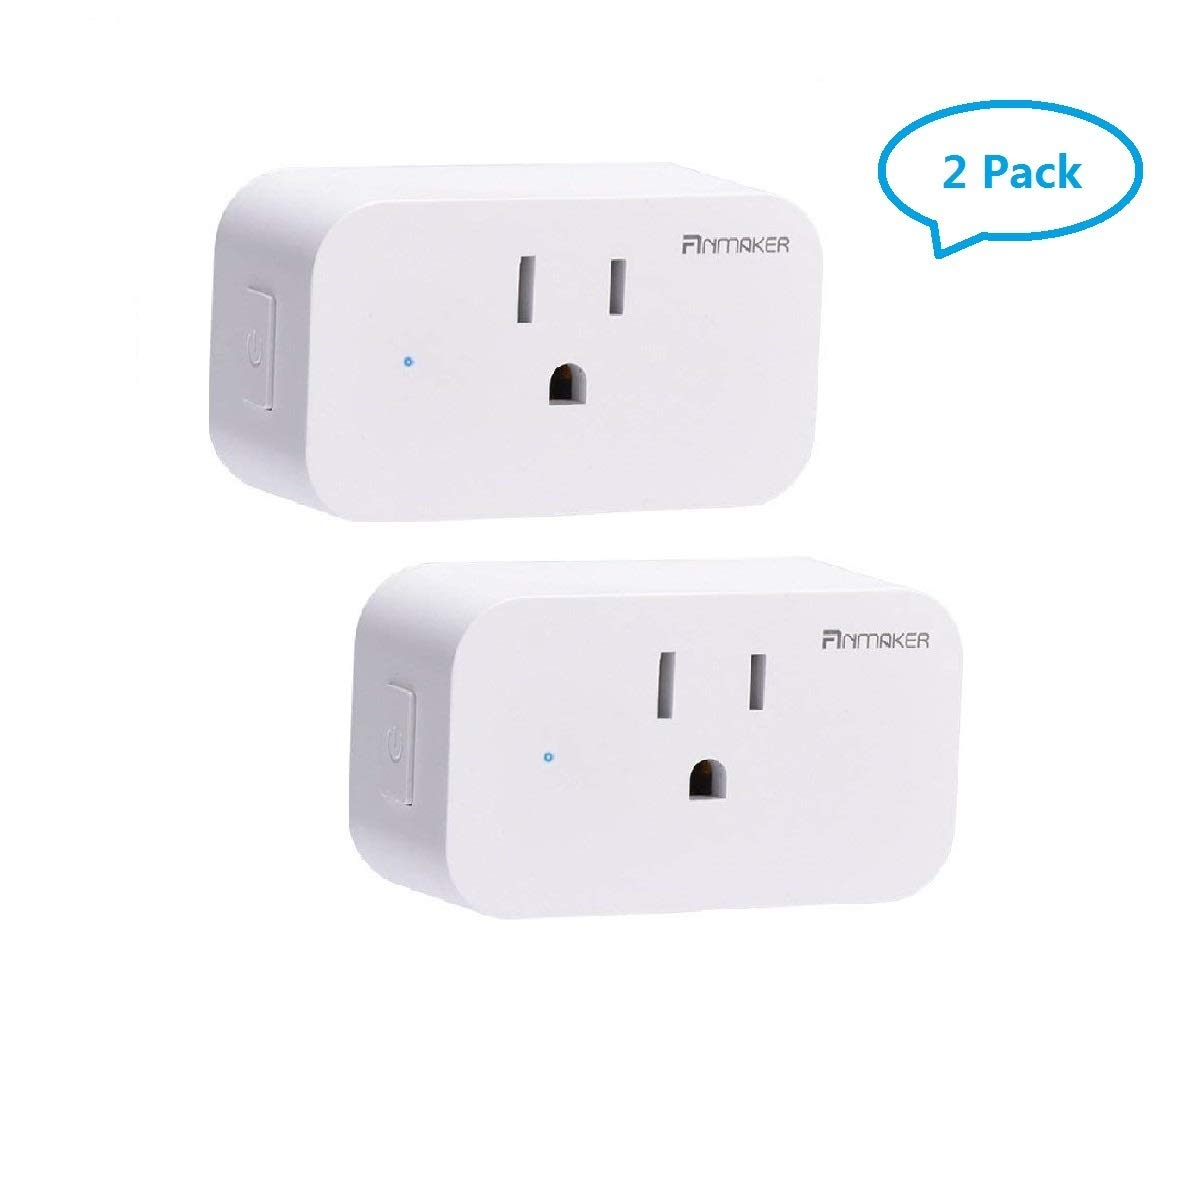 Mini Wifi Smart Plug 2 Pack,Voice Control Through Alexa and Google Assistant,Control Your Home Device from Anywhere by 2G/3G/4G,Supports Timing Switch,DIY Scenes,Device Sharing.